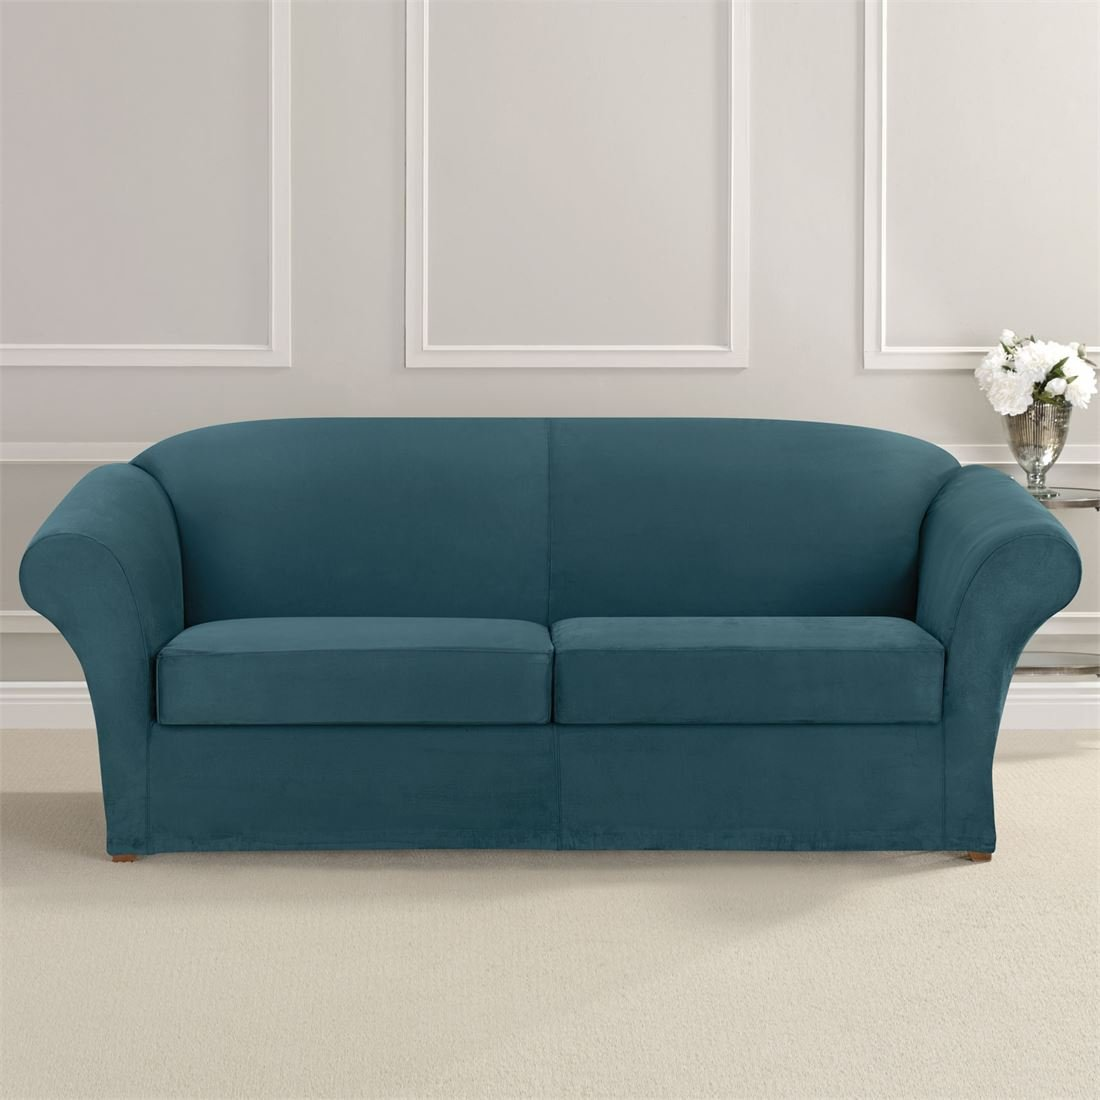 Brylanehome Ultimate Stretch Faux Suede 2-Seat Sofa Cushion Slipcover (Peacock Blue,0)